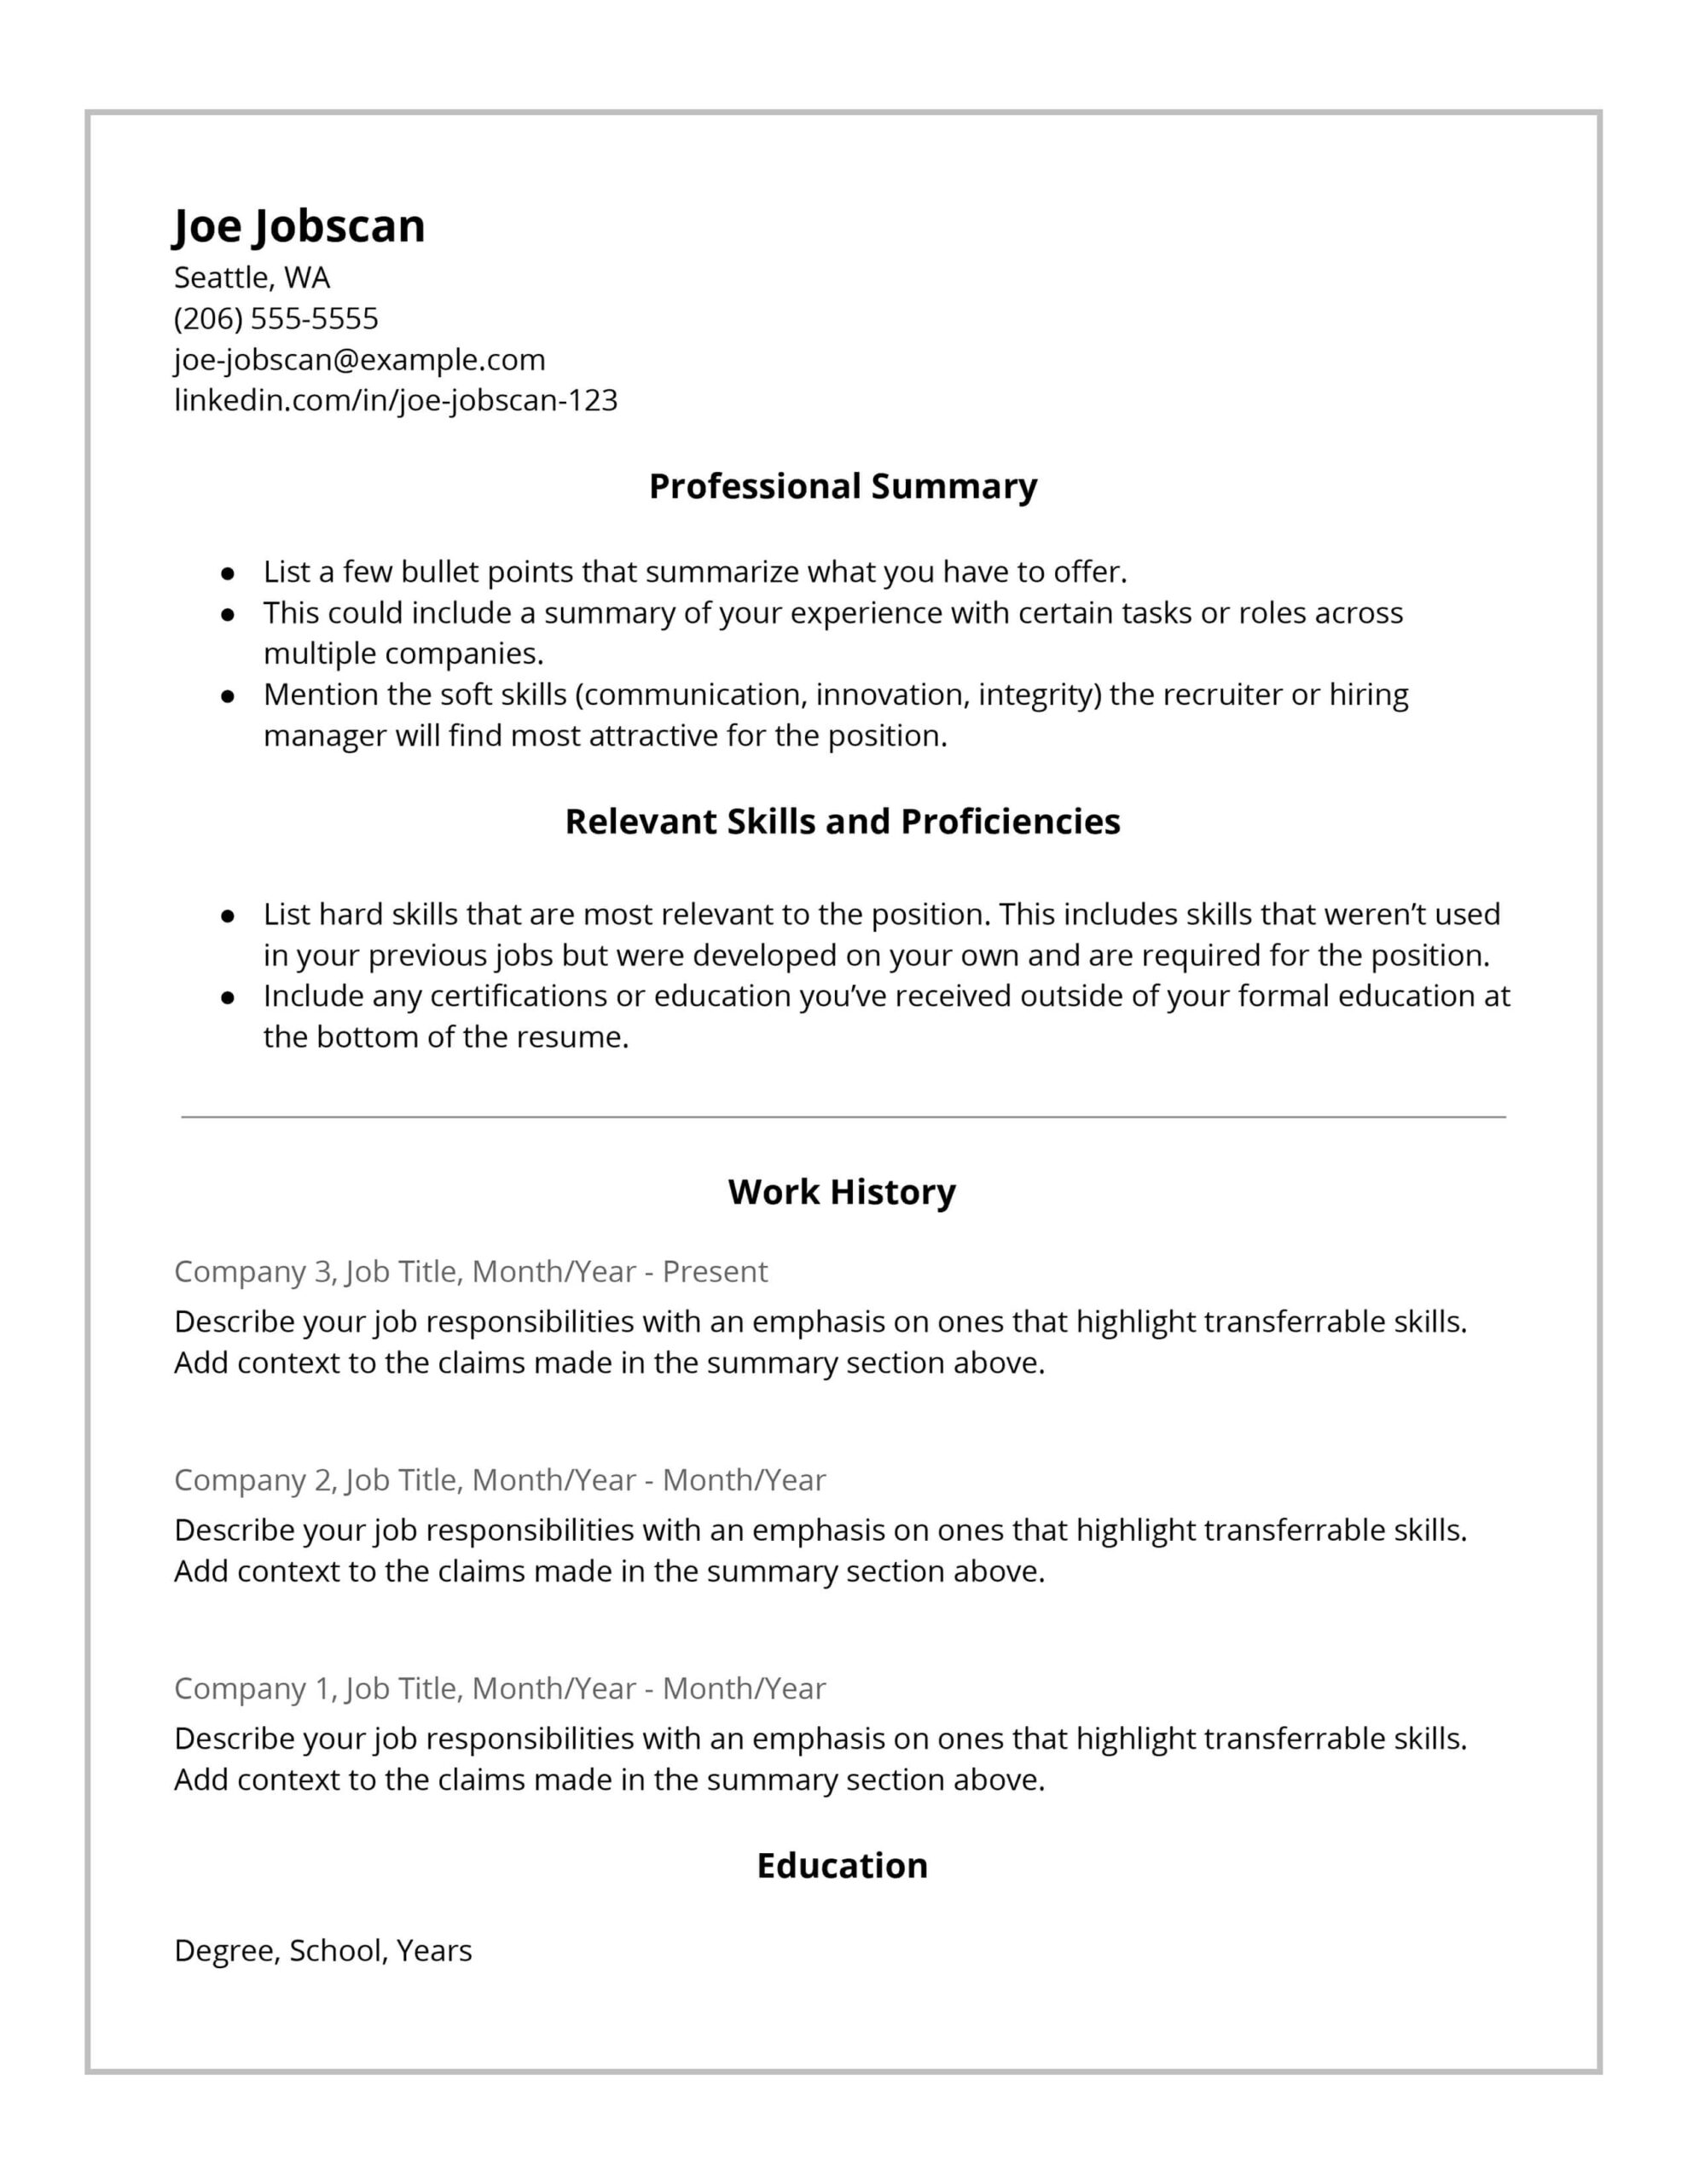 recruiters hate the functional resume format here best samples hybrid template updated Resume Best Functional Resume Samples